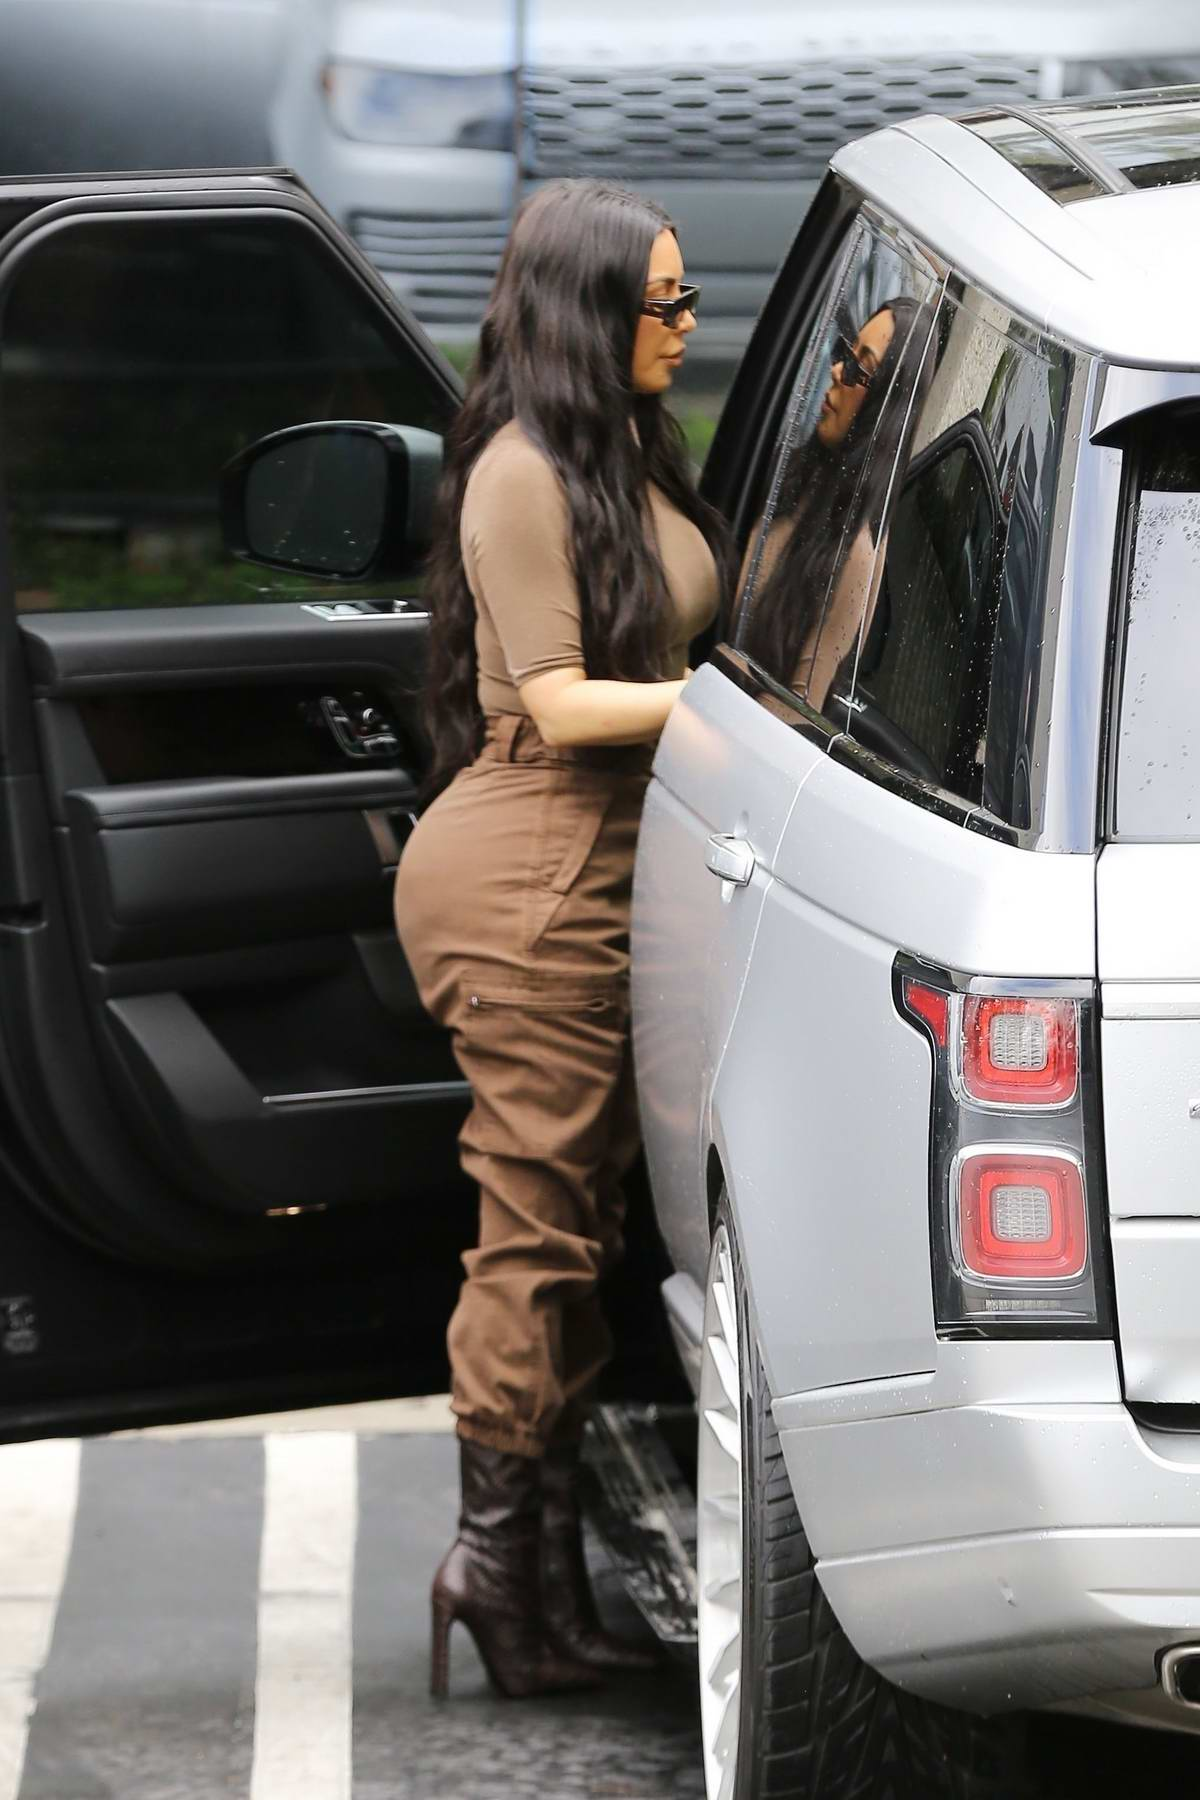 Kim Kardashian spotted in a brown outfit as she arrives to attend church services in Calabasas, California